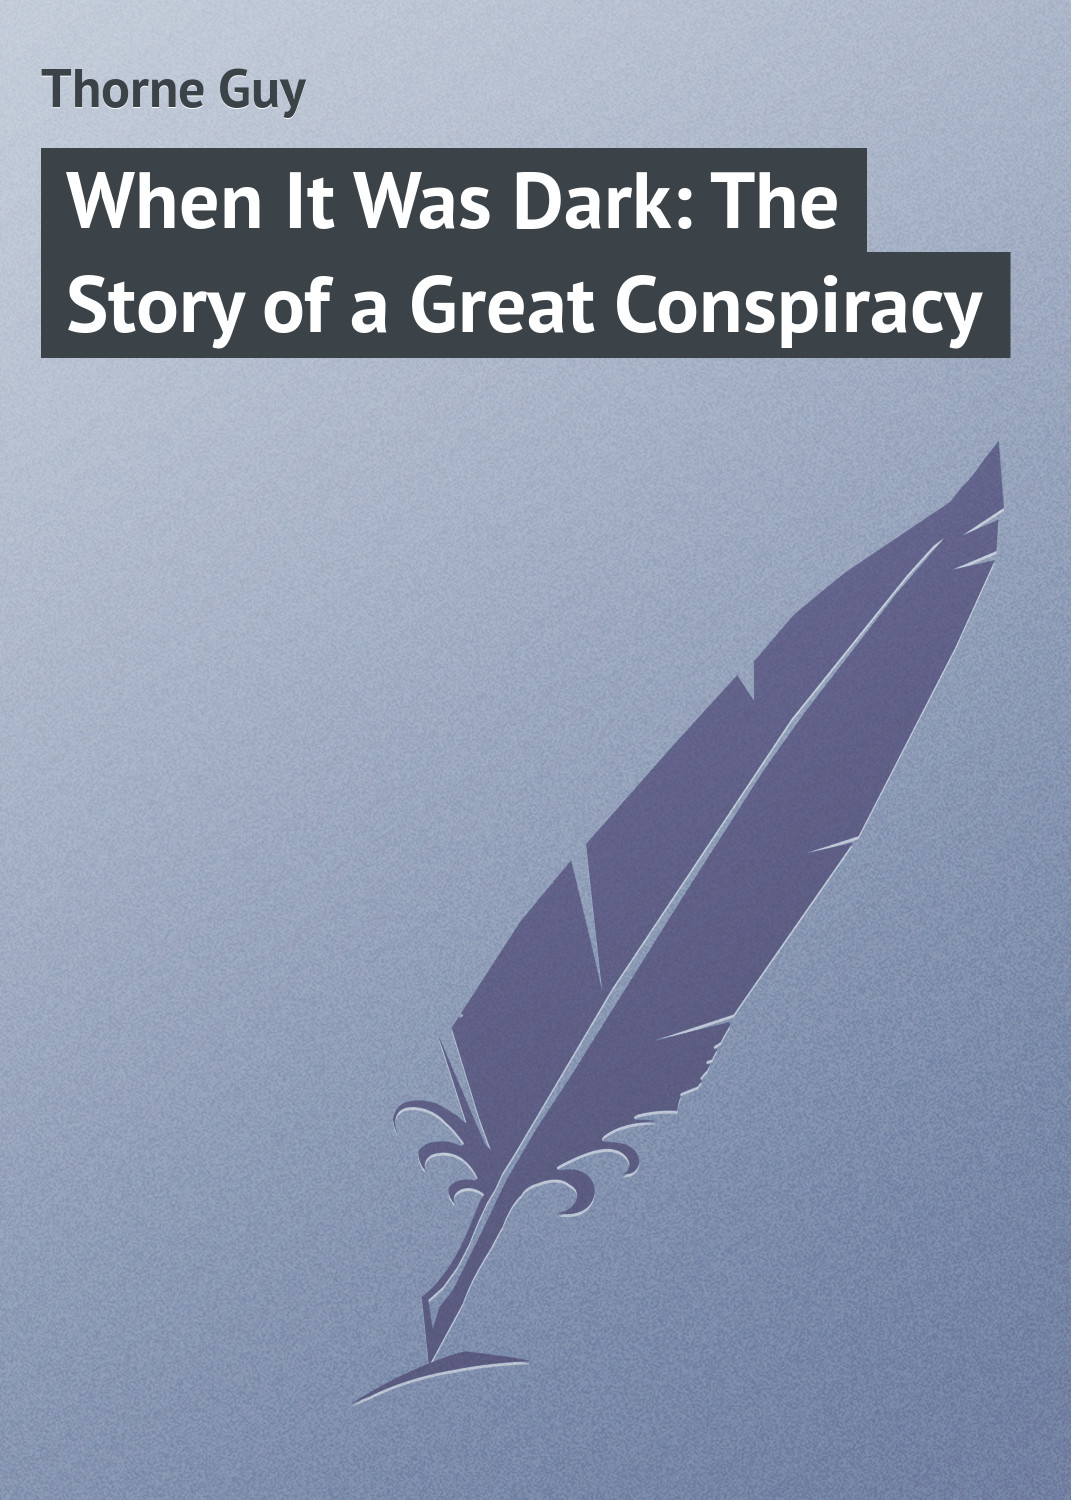 When It Was Dark: The Story of a Great Conspiracy